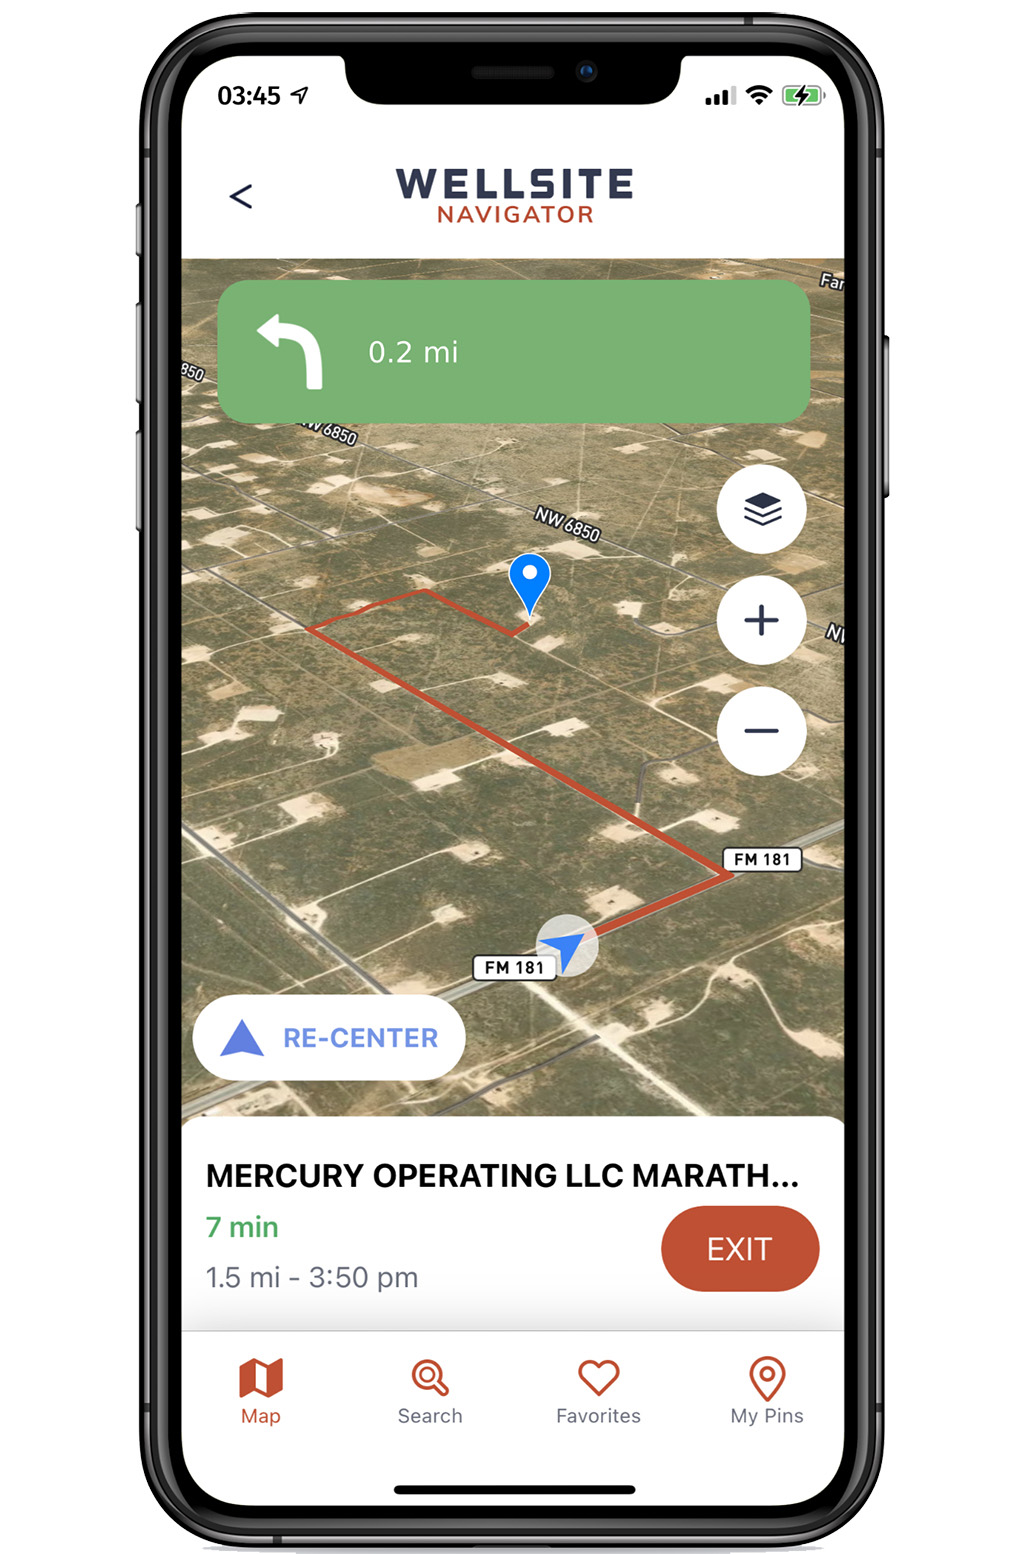 A phone displaying the inside screen of the wellsite navigator app, showing a map with Midland, TX and oilfield wells marked around it